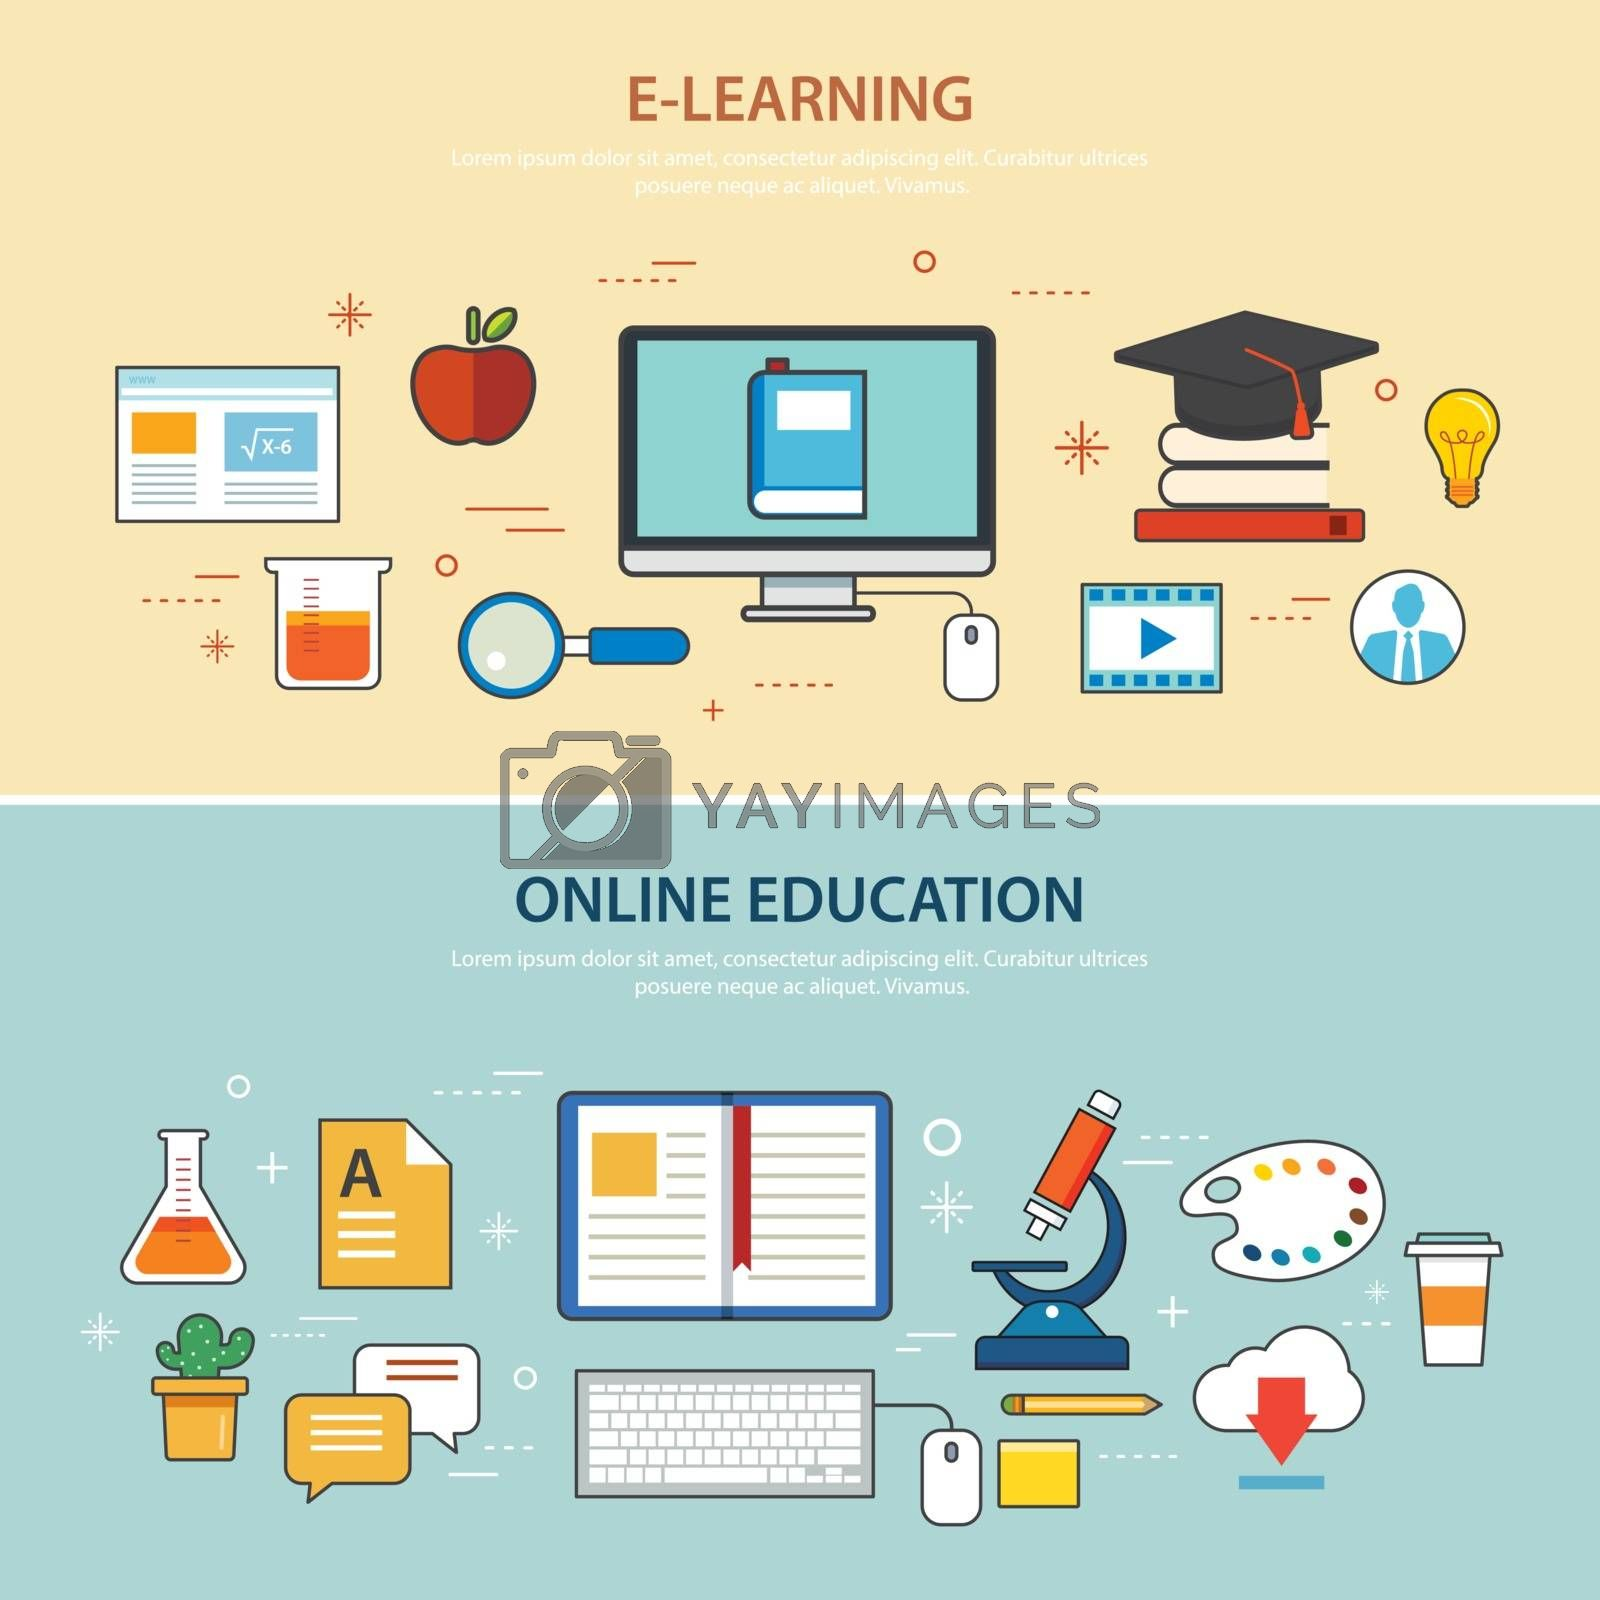 Online Education And E Learning Banner Flat Design Template Royalty Free Stock Image Yayimages Royalty Free Stock Photos And Vectors